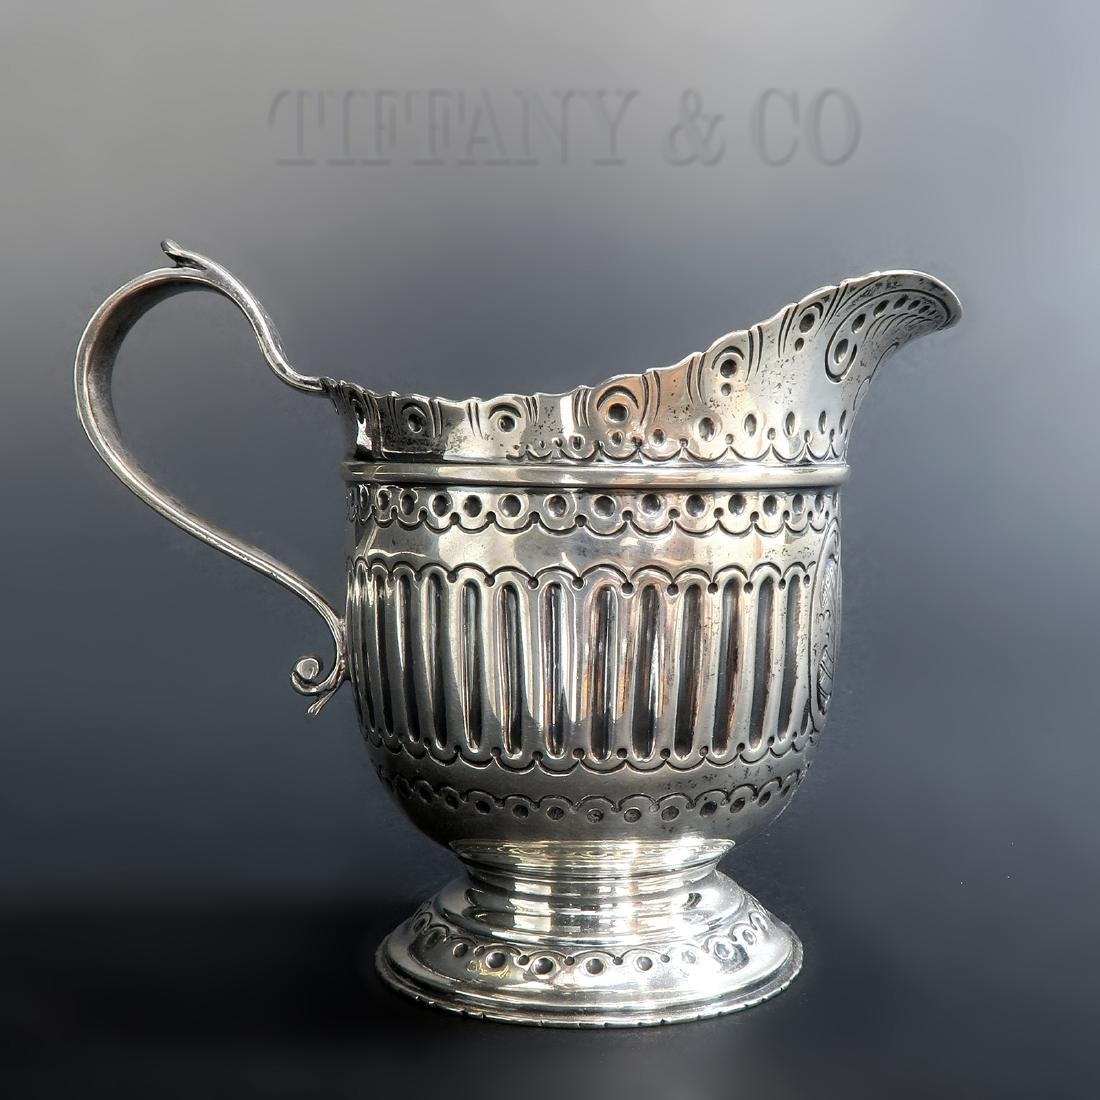 Limited Edition Tiffany Silver Sterling Creamer